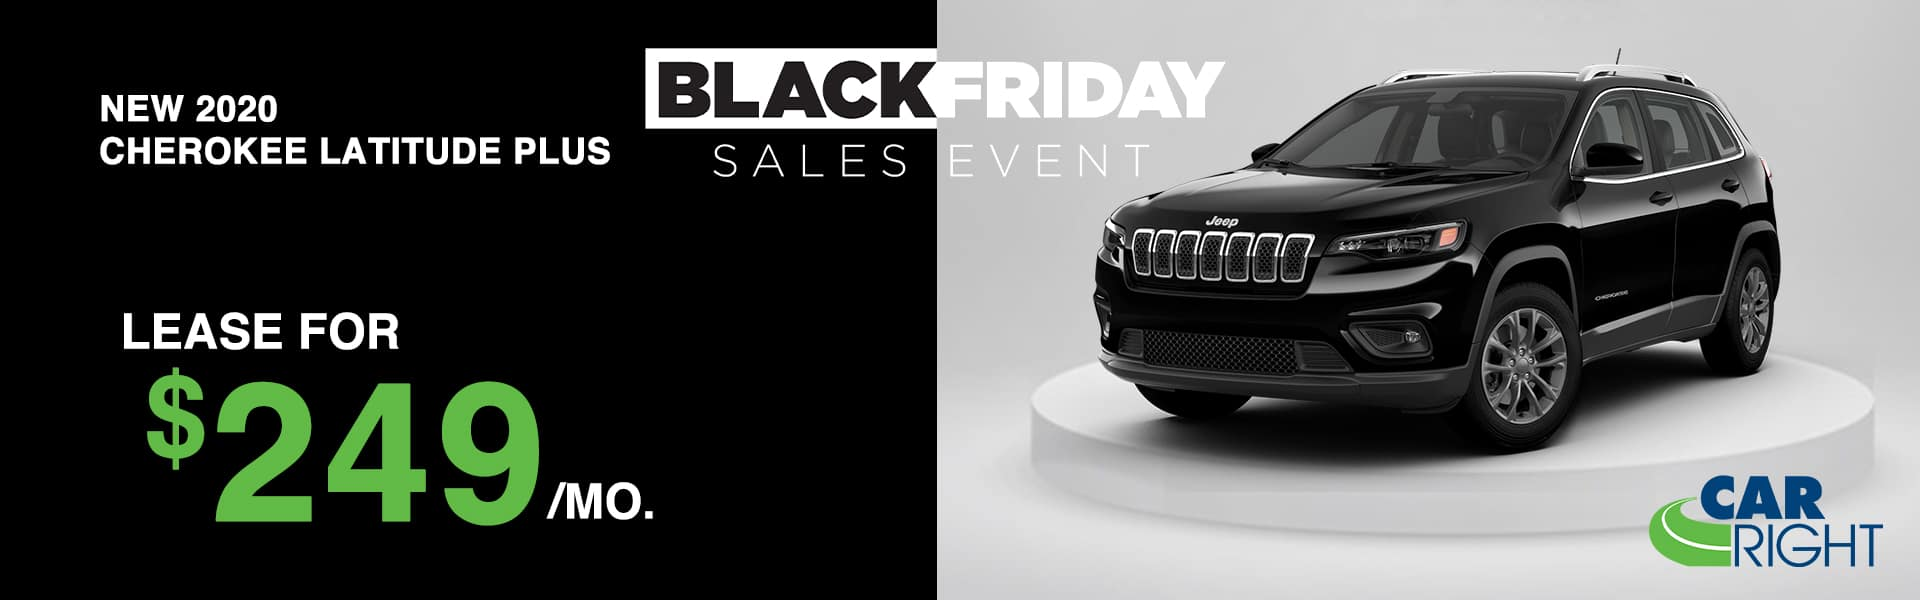 CARRIGHT-J201010-JEEPCHEROKEELATITUDEPLUS Carright moon township Pittsburgh diehl auto Chrysler dodge jeep ram Black Friday sales event lease special new vehicle special sale year end savings employee pricing plus